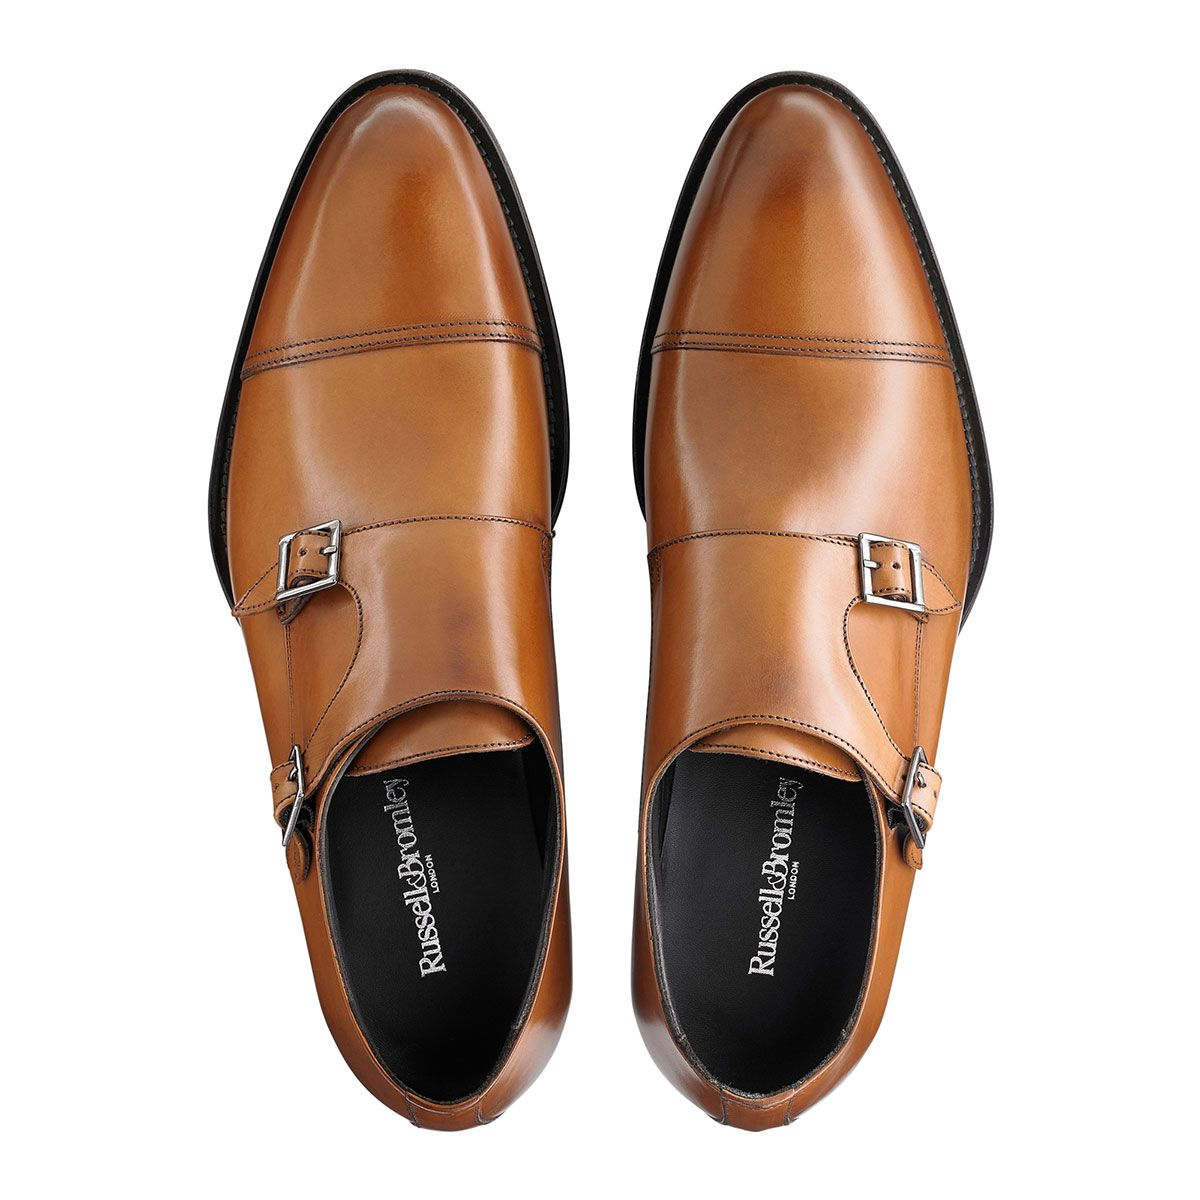 russell and bromley mens shoes